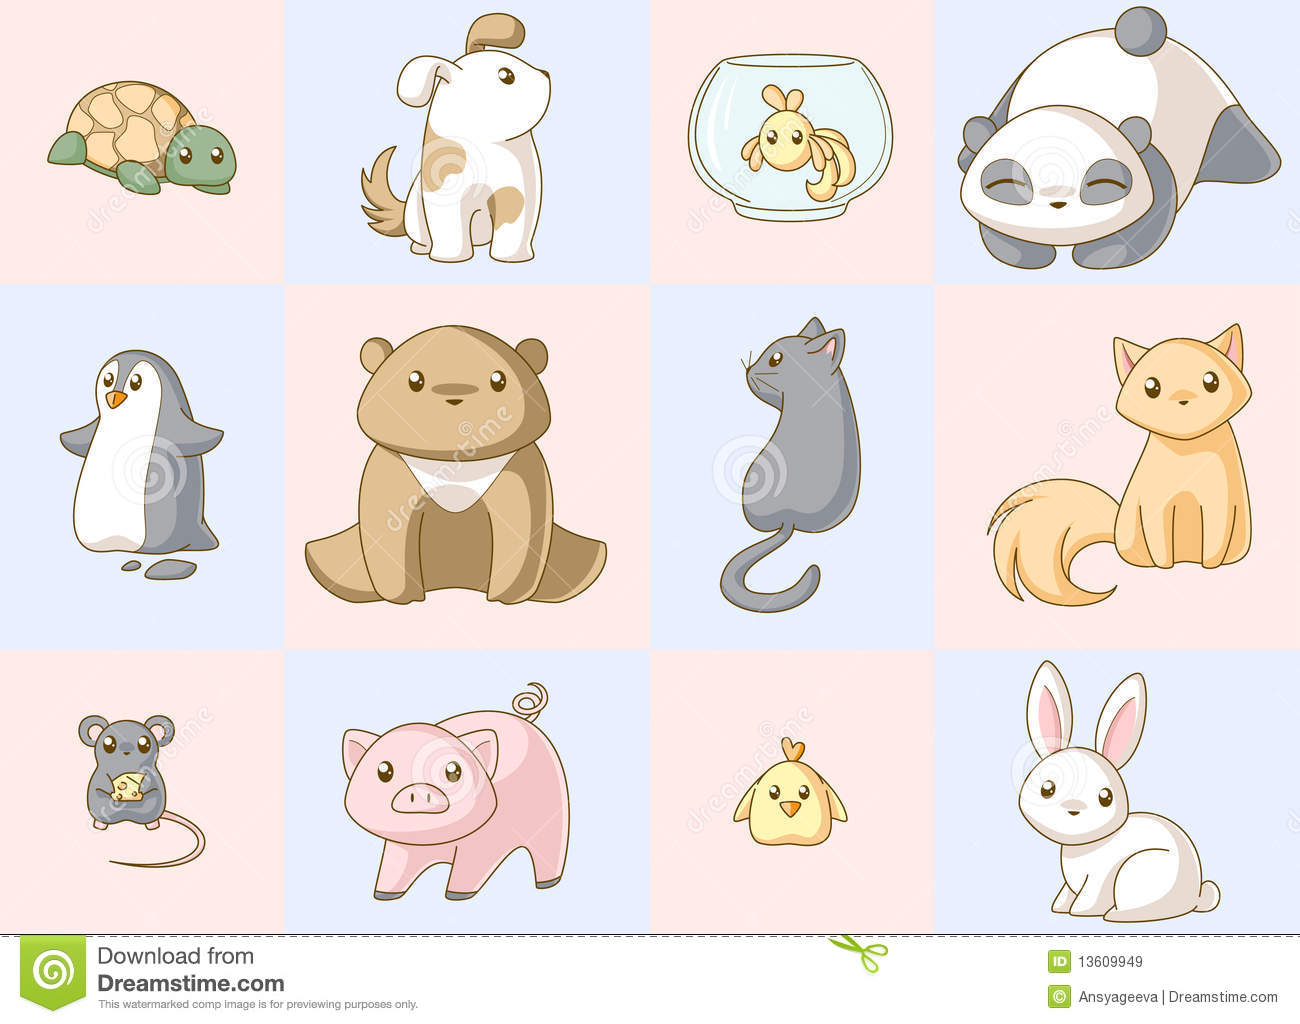 Cute Kitty Wallpapers Download Animals Kawaii Set Royalty Free Stock Images Image 13609949